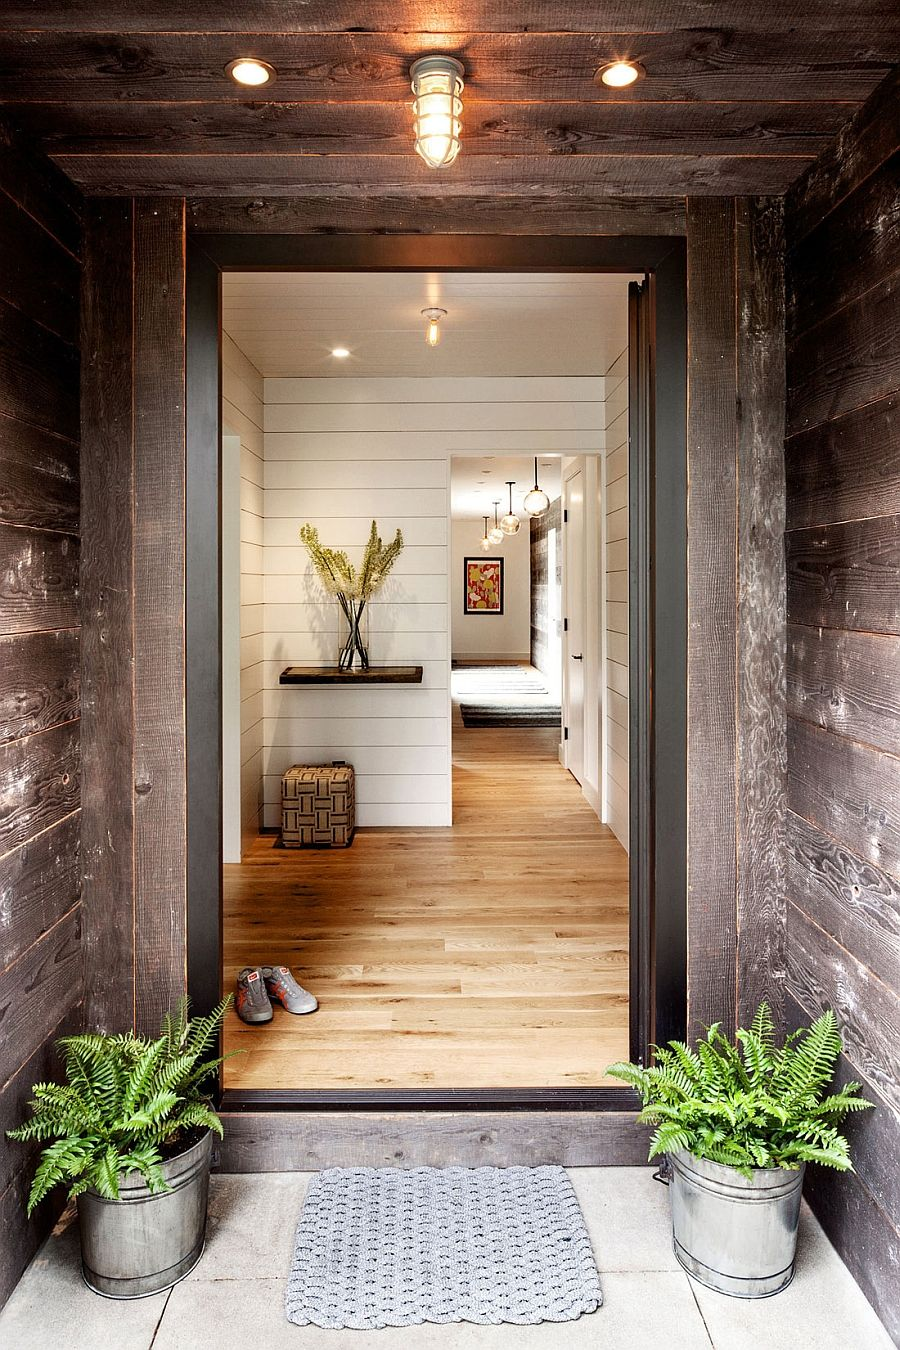 Idyllic portland home blends industrial and midcentury styles mid